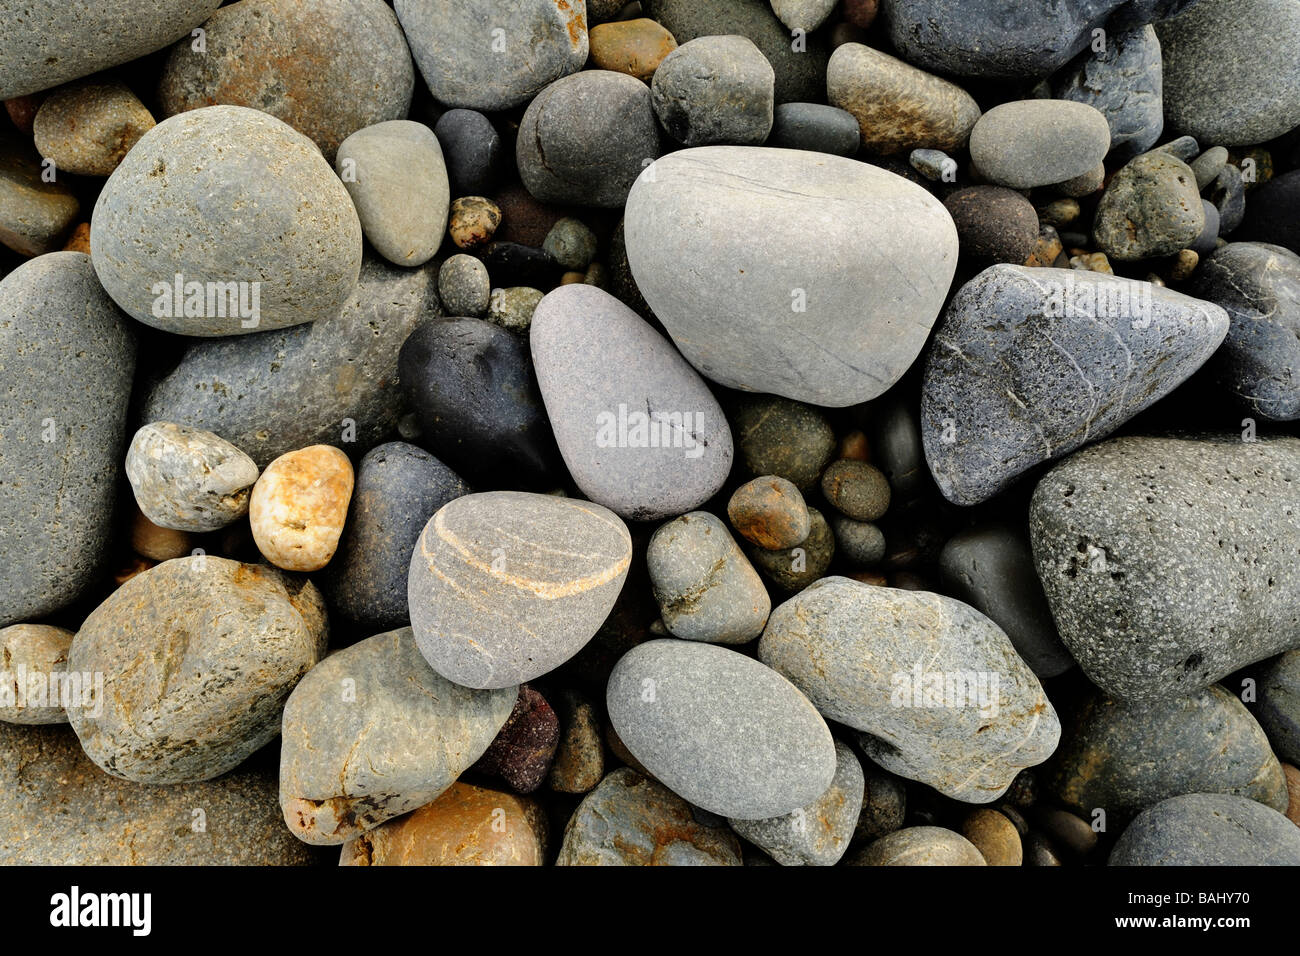 Pebbles on the beach at Newgale in Pembrokeshire Wales UK - Stock Image